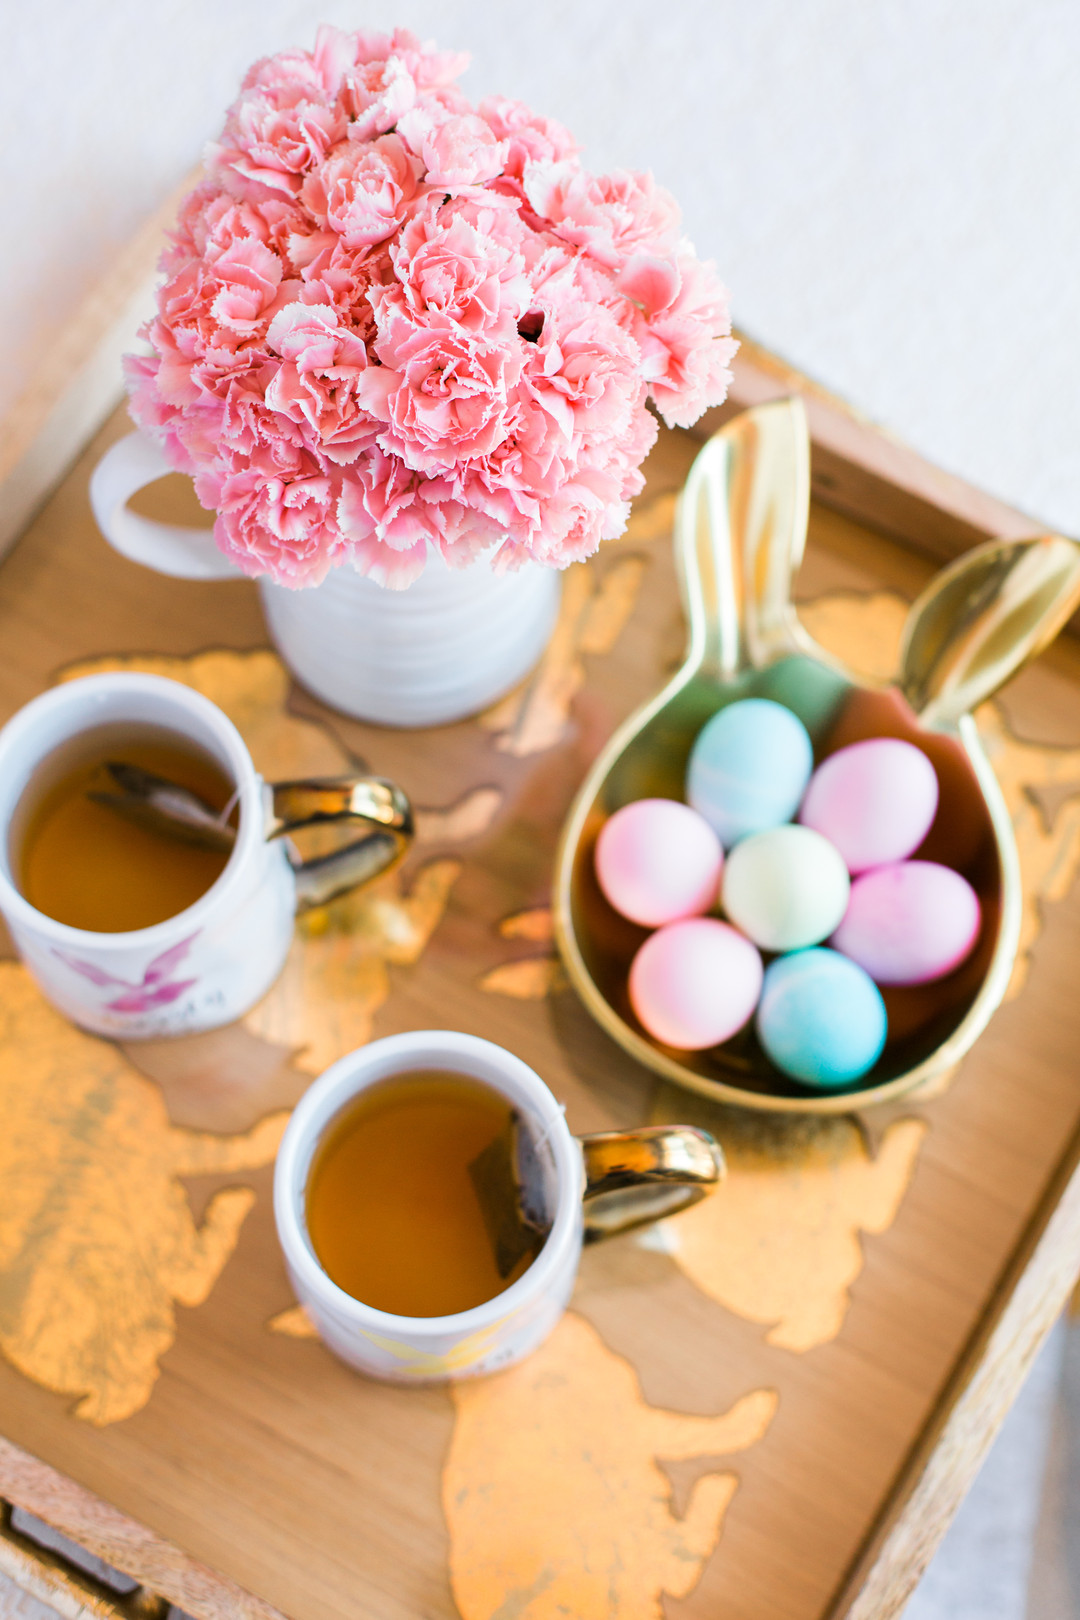 Staal_KristinaStaalPhotography_KristinaStaalPhotographyEasterTablescape201637_big Easy Entertaining: Easter Brunch Inspiration for Two